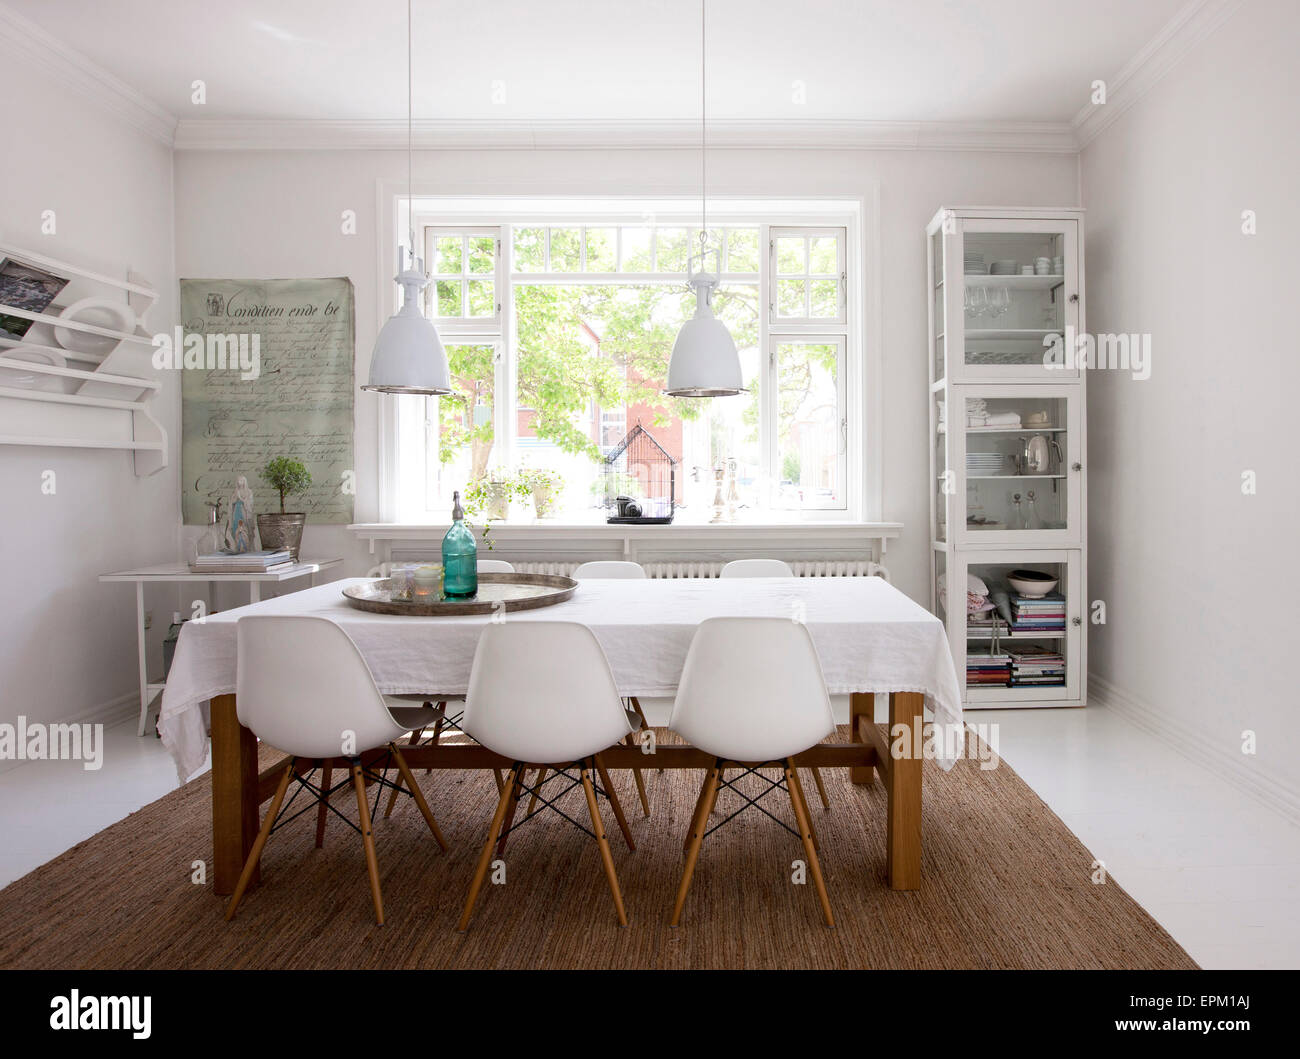 Dining Room With Shelves And Bar Stools In Hanne Davidsen Home Renovation Silkesborg Denmark